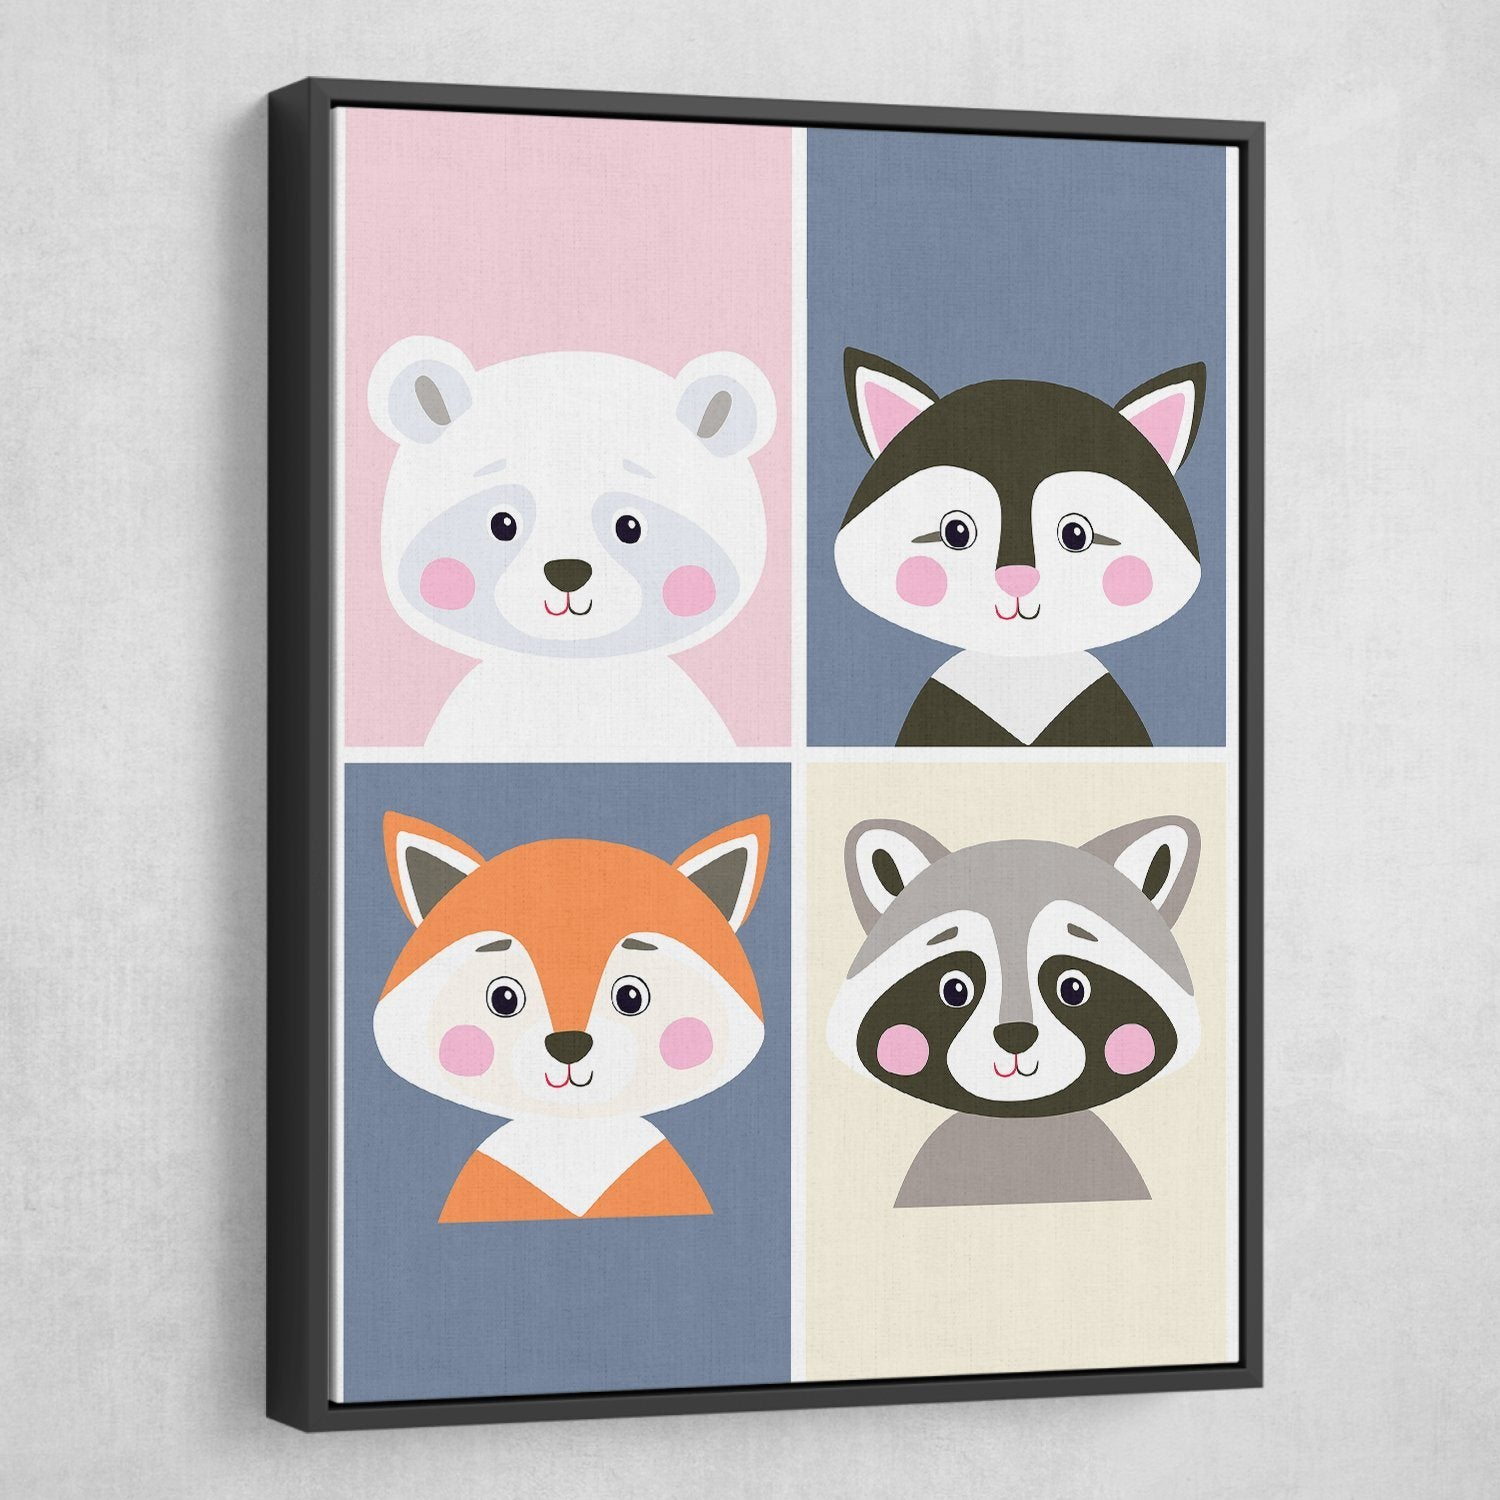 Children Cartoon wall art black frame